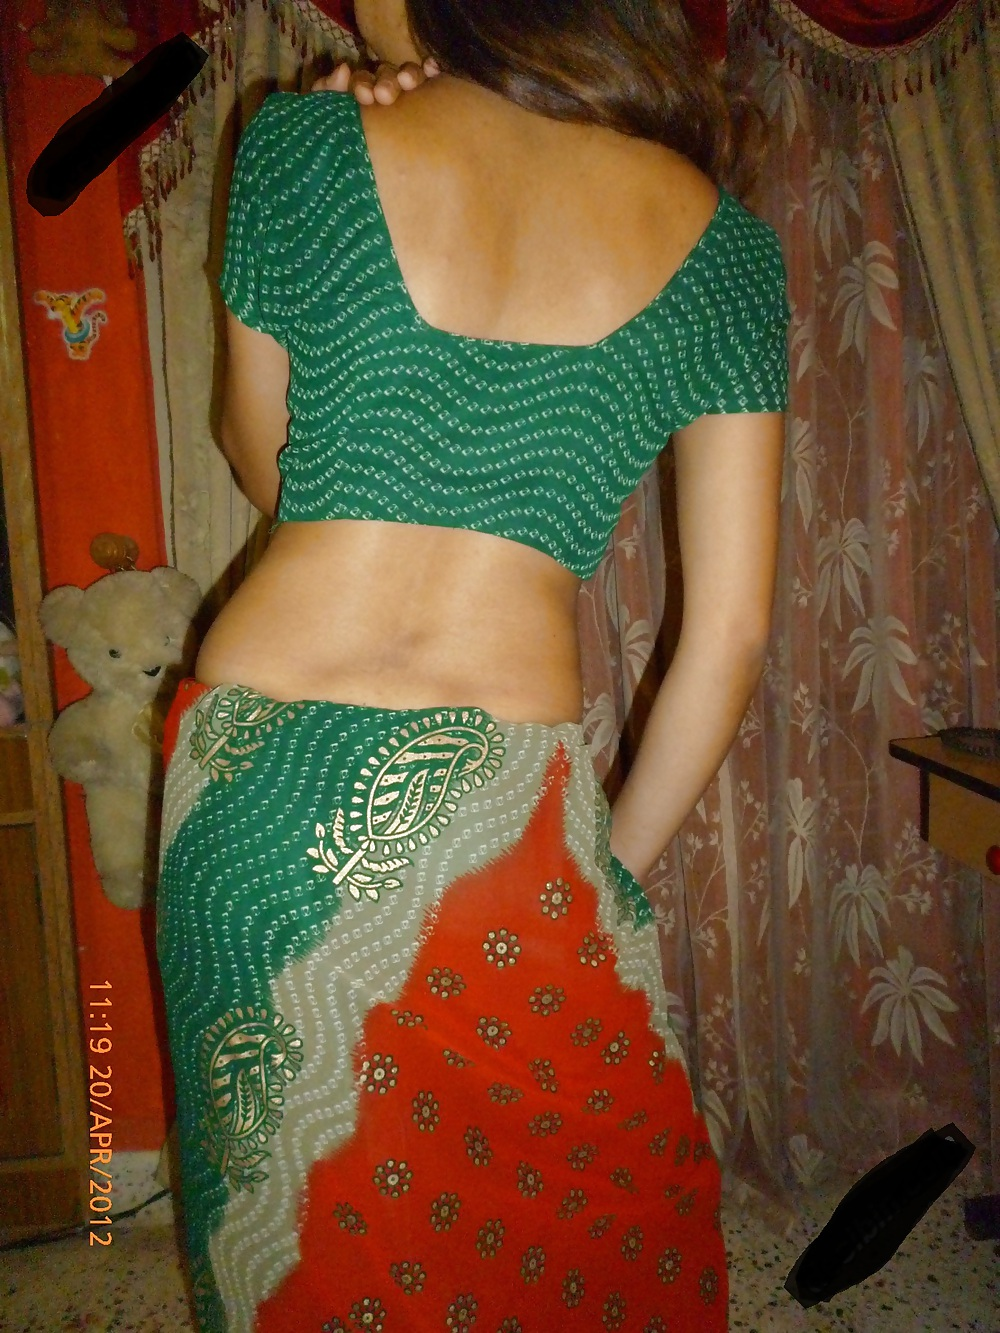 Gujarati bhabhi ki photo